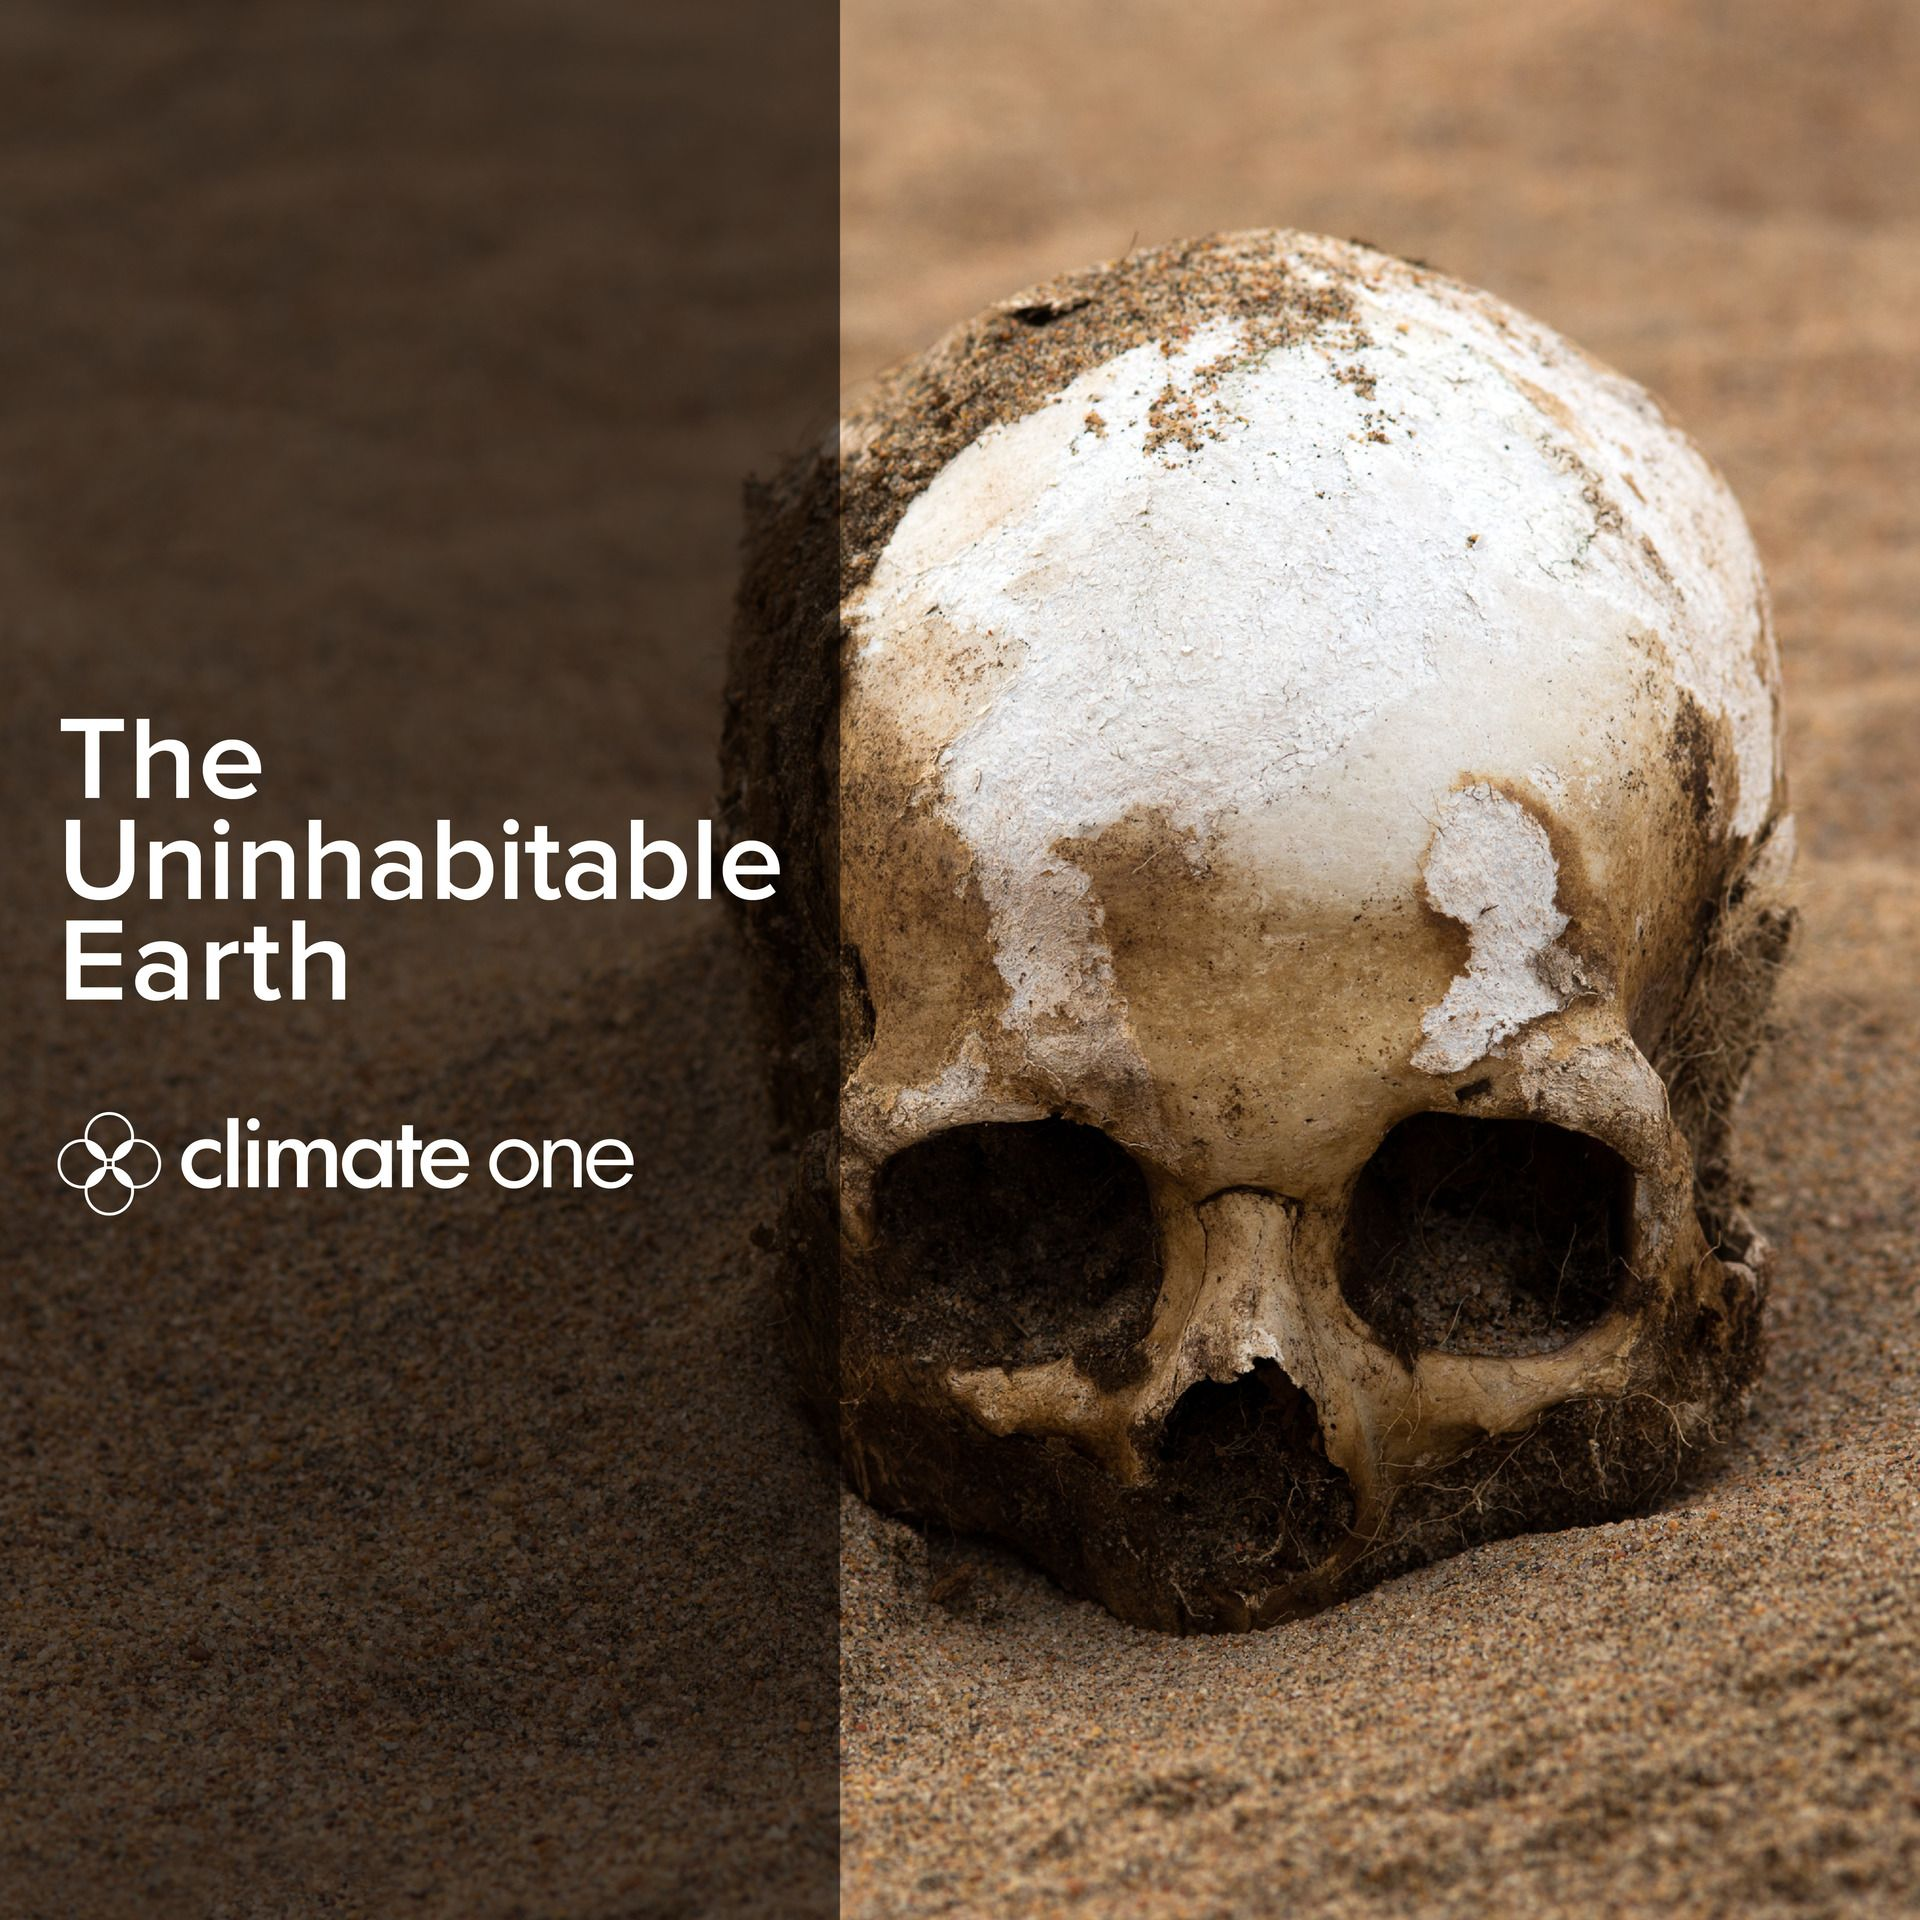 radio-Uninhabitable_Earth.jpg - 4.18 MB